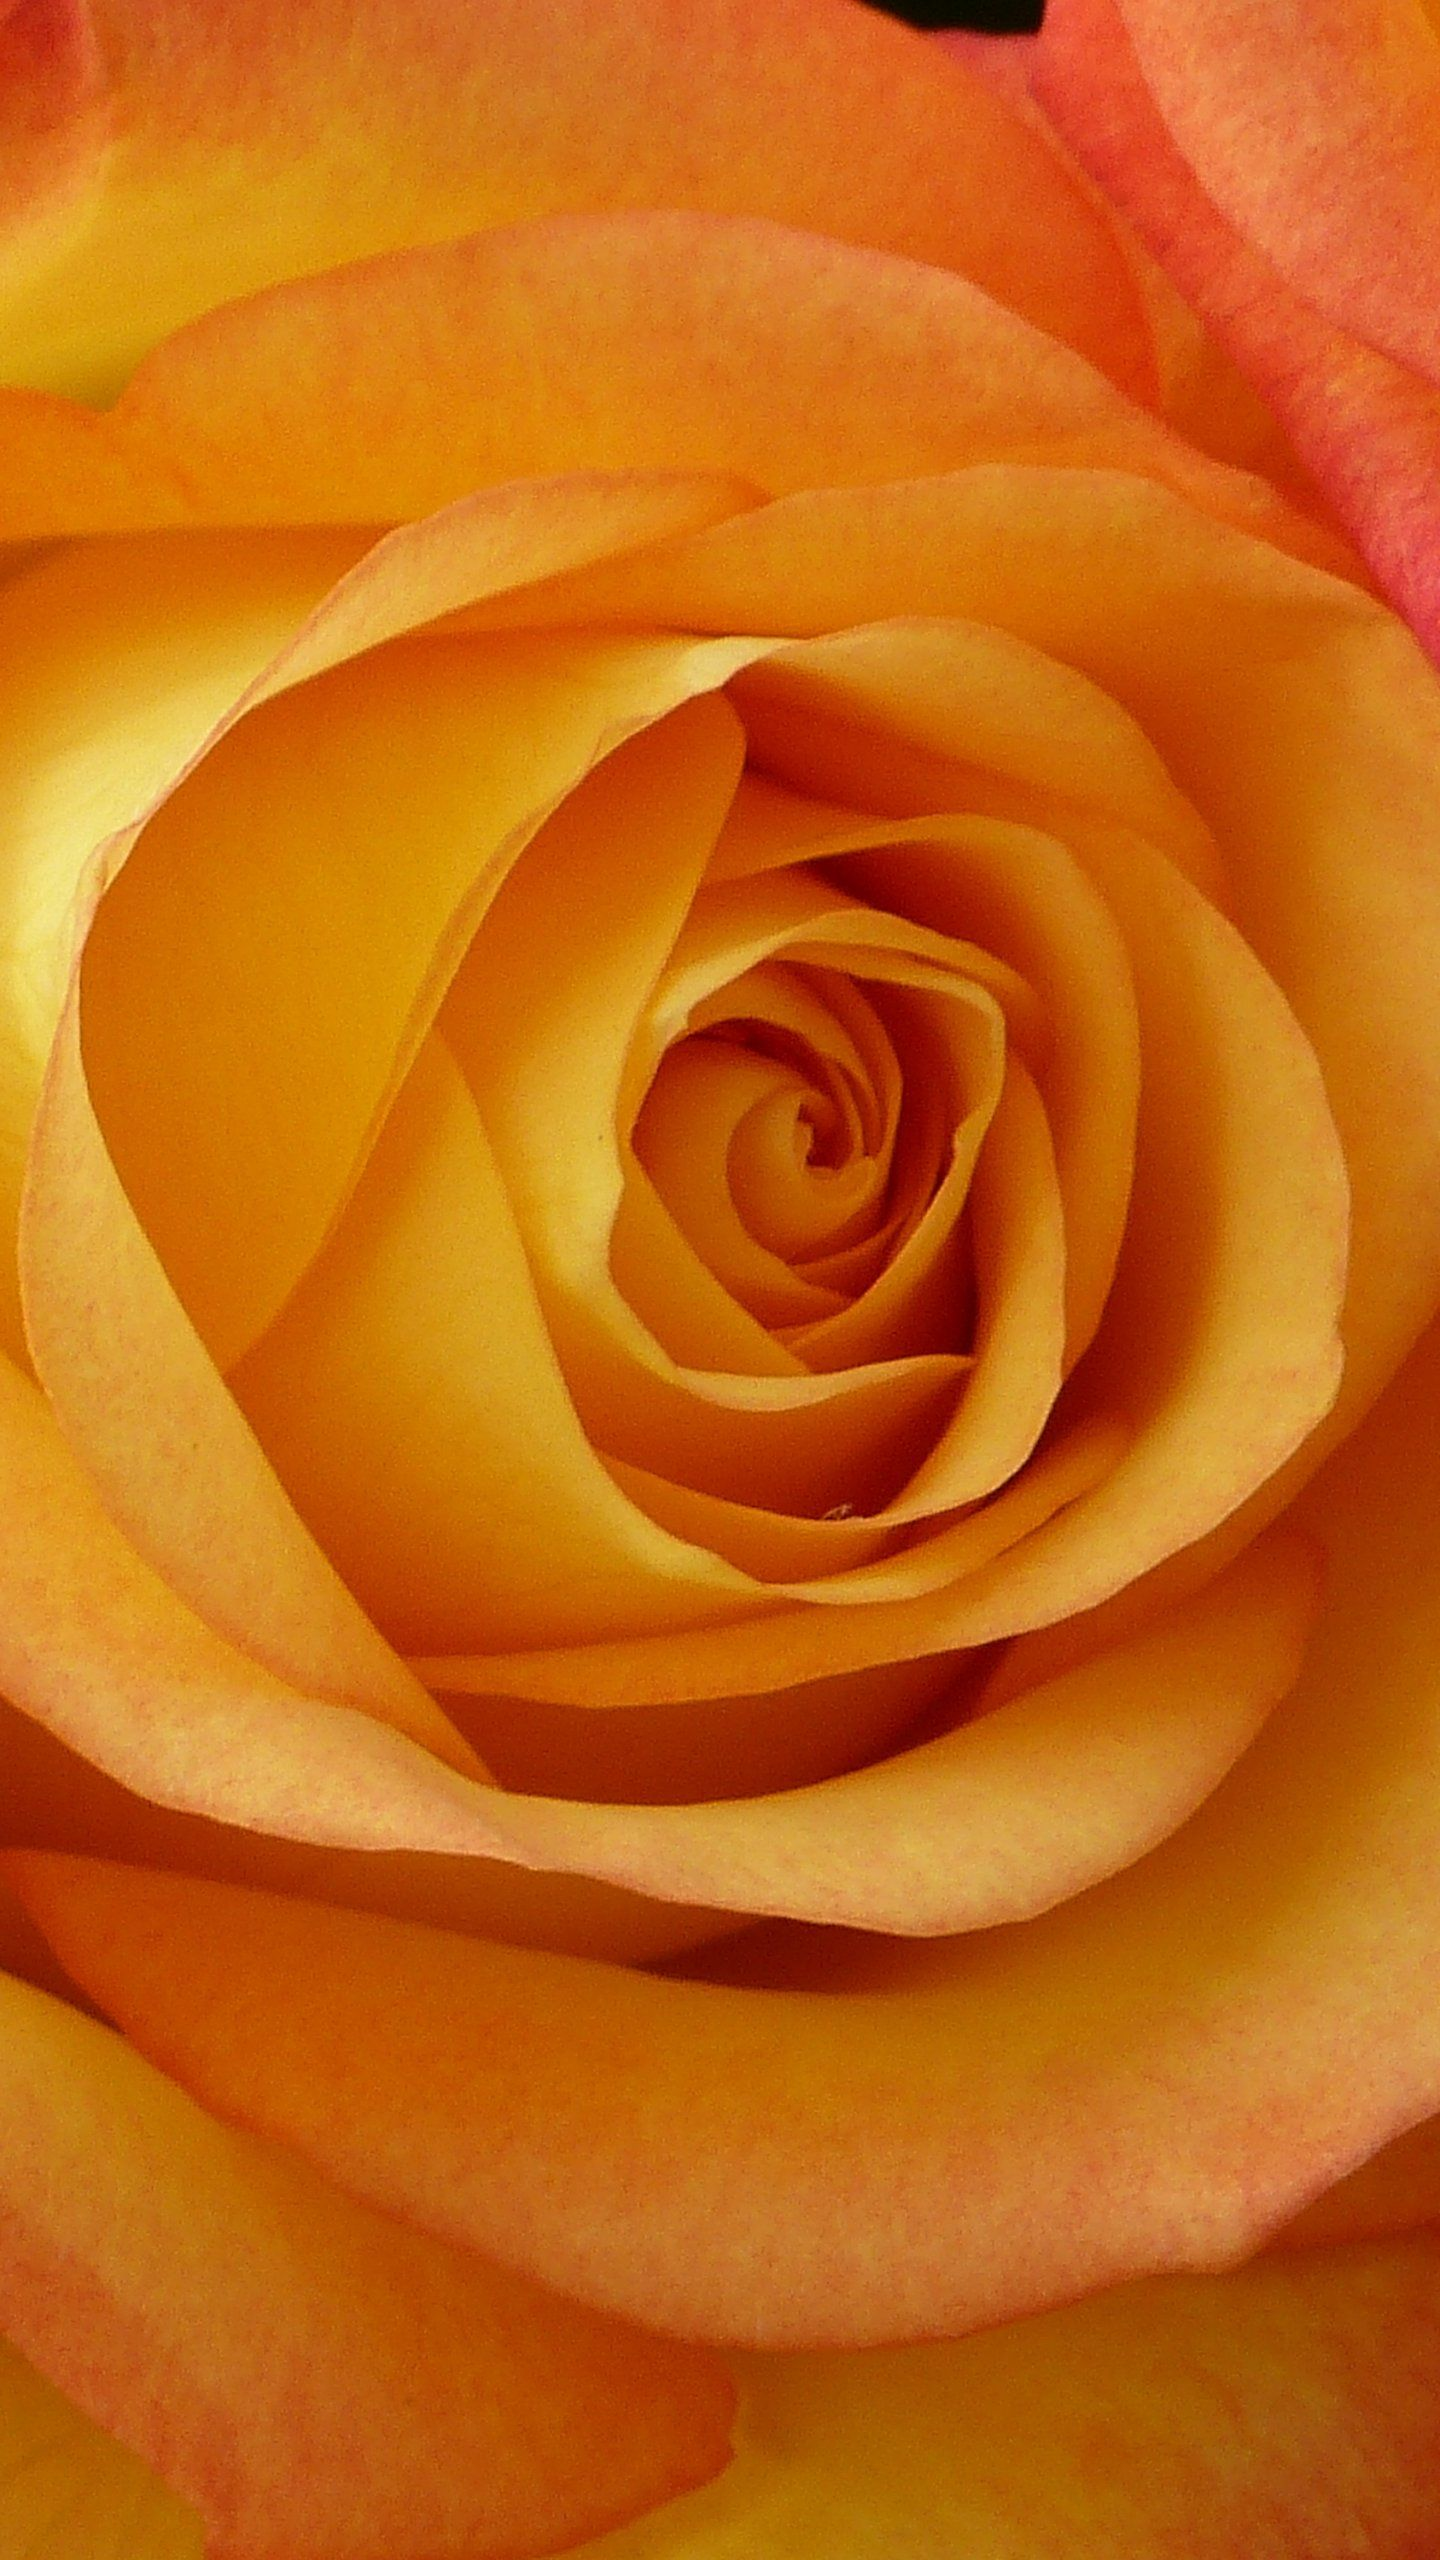 1440x2560 Peach Rose Wallpaper - iPhone, Android & Desktop Backgrounds